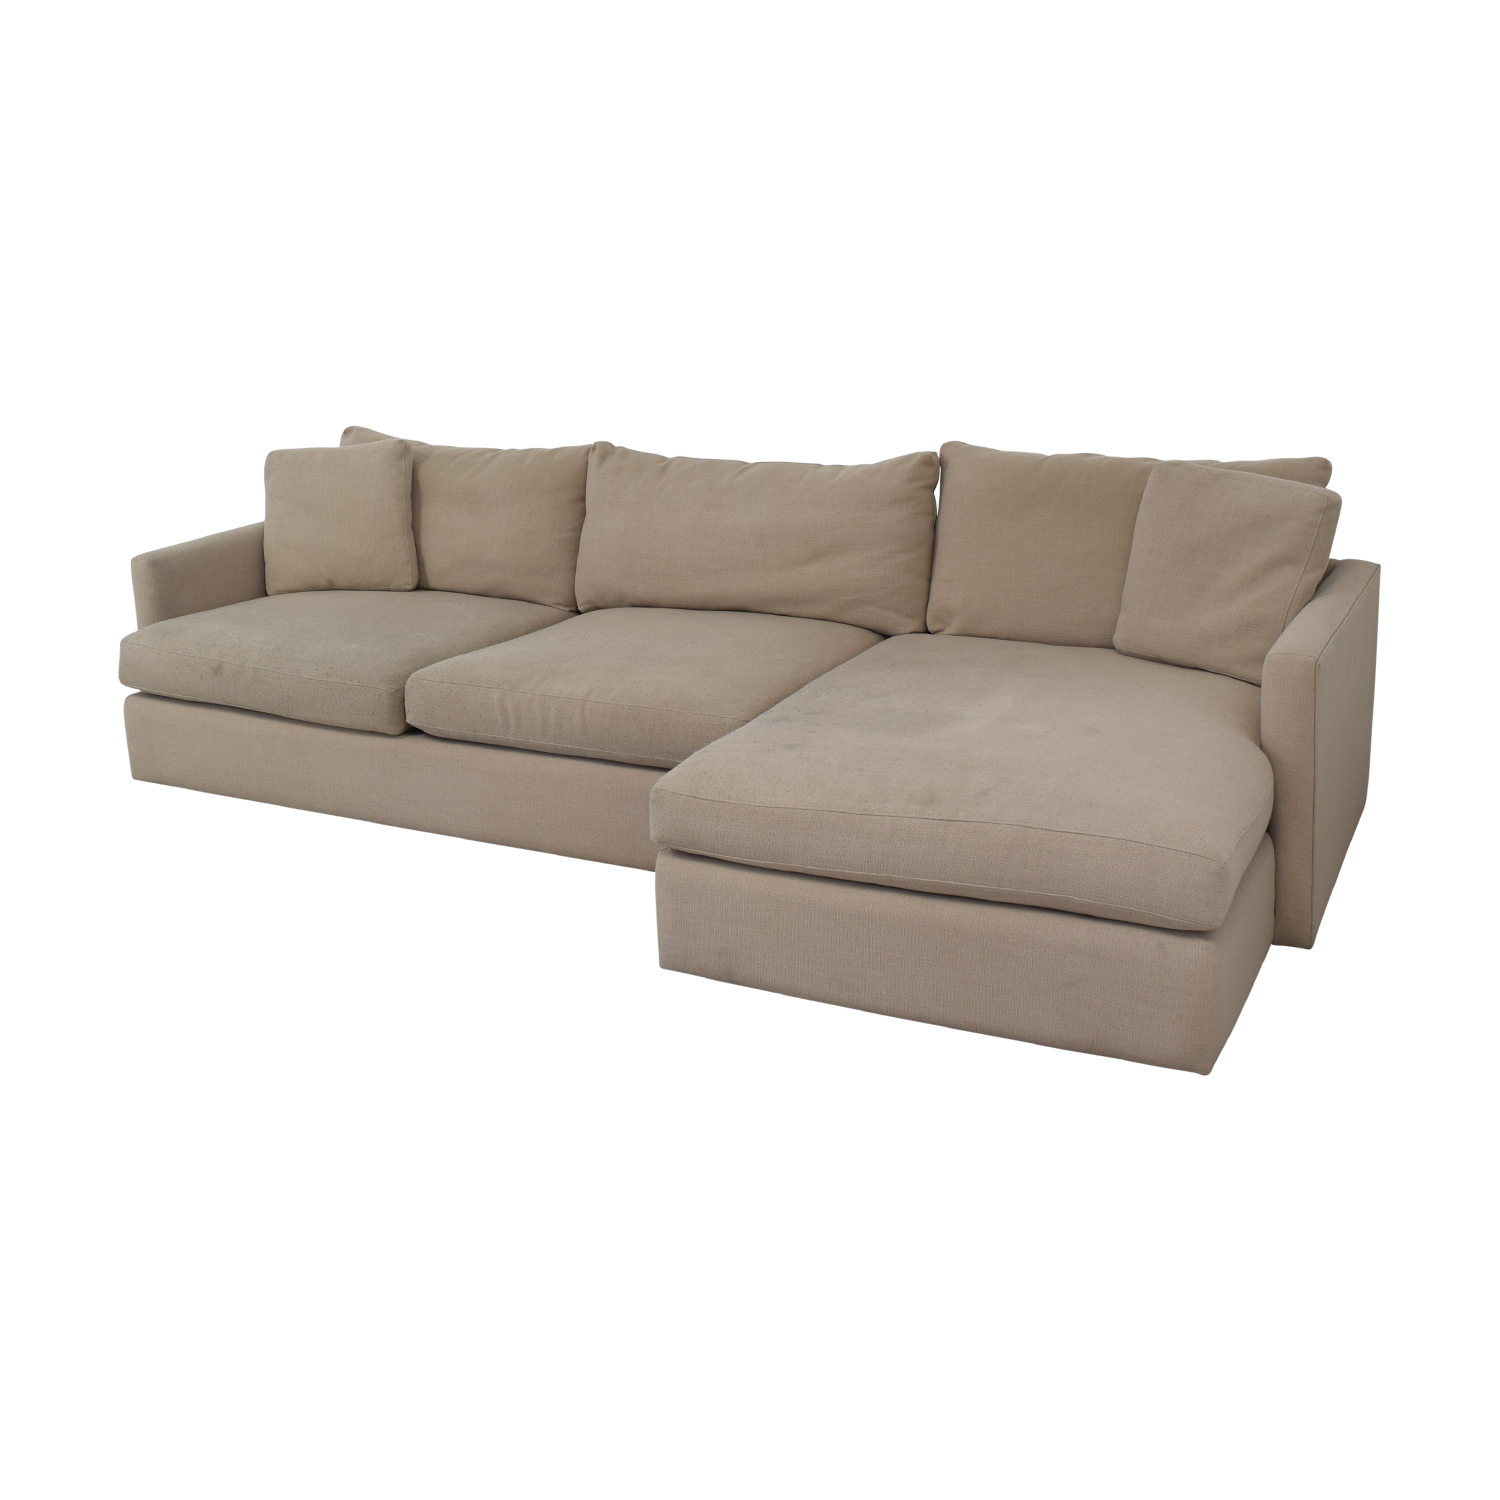 Crate & Barrel Crate & Barrel Sectional Sofa on sale